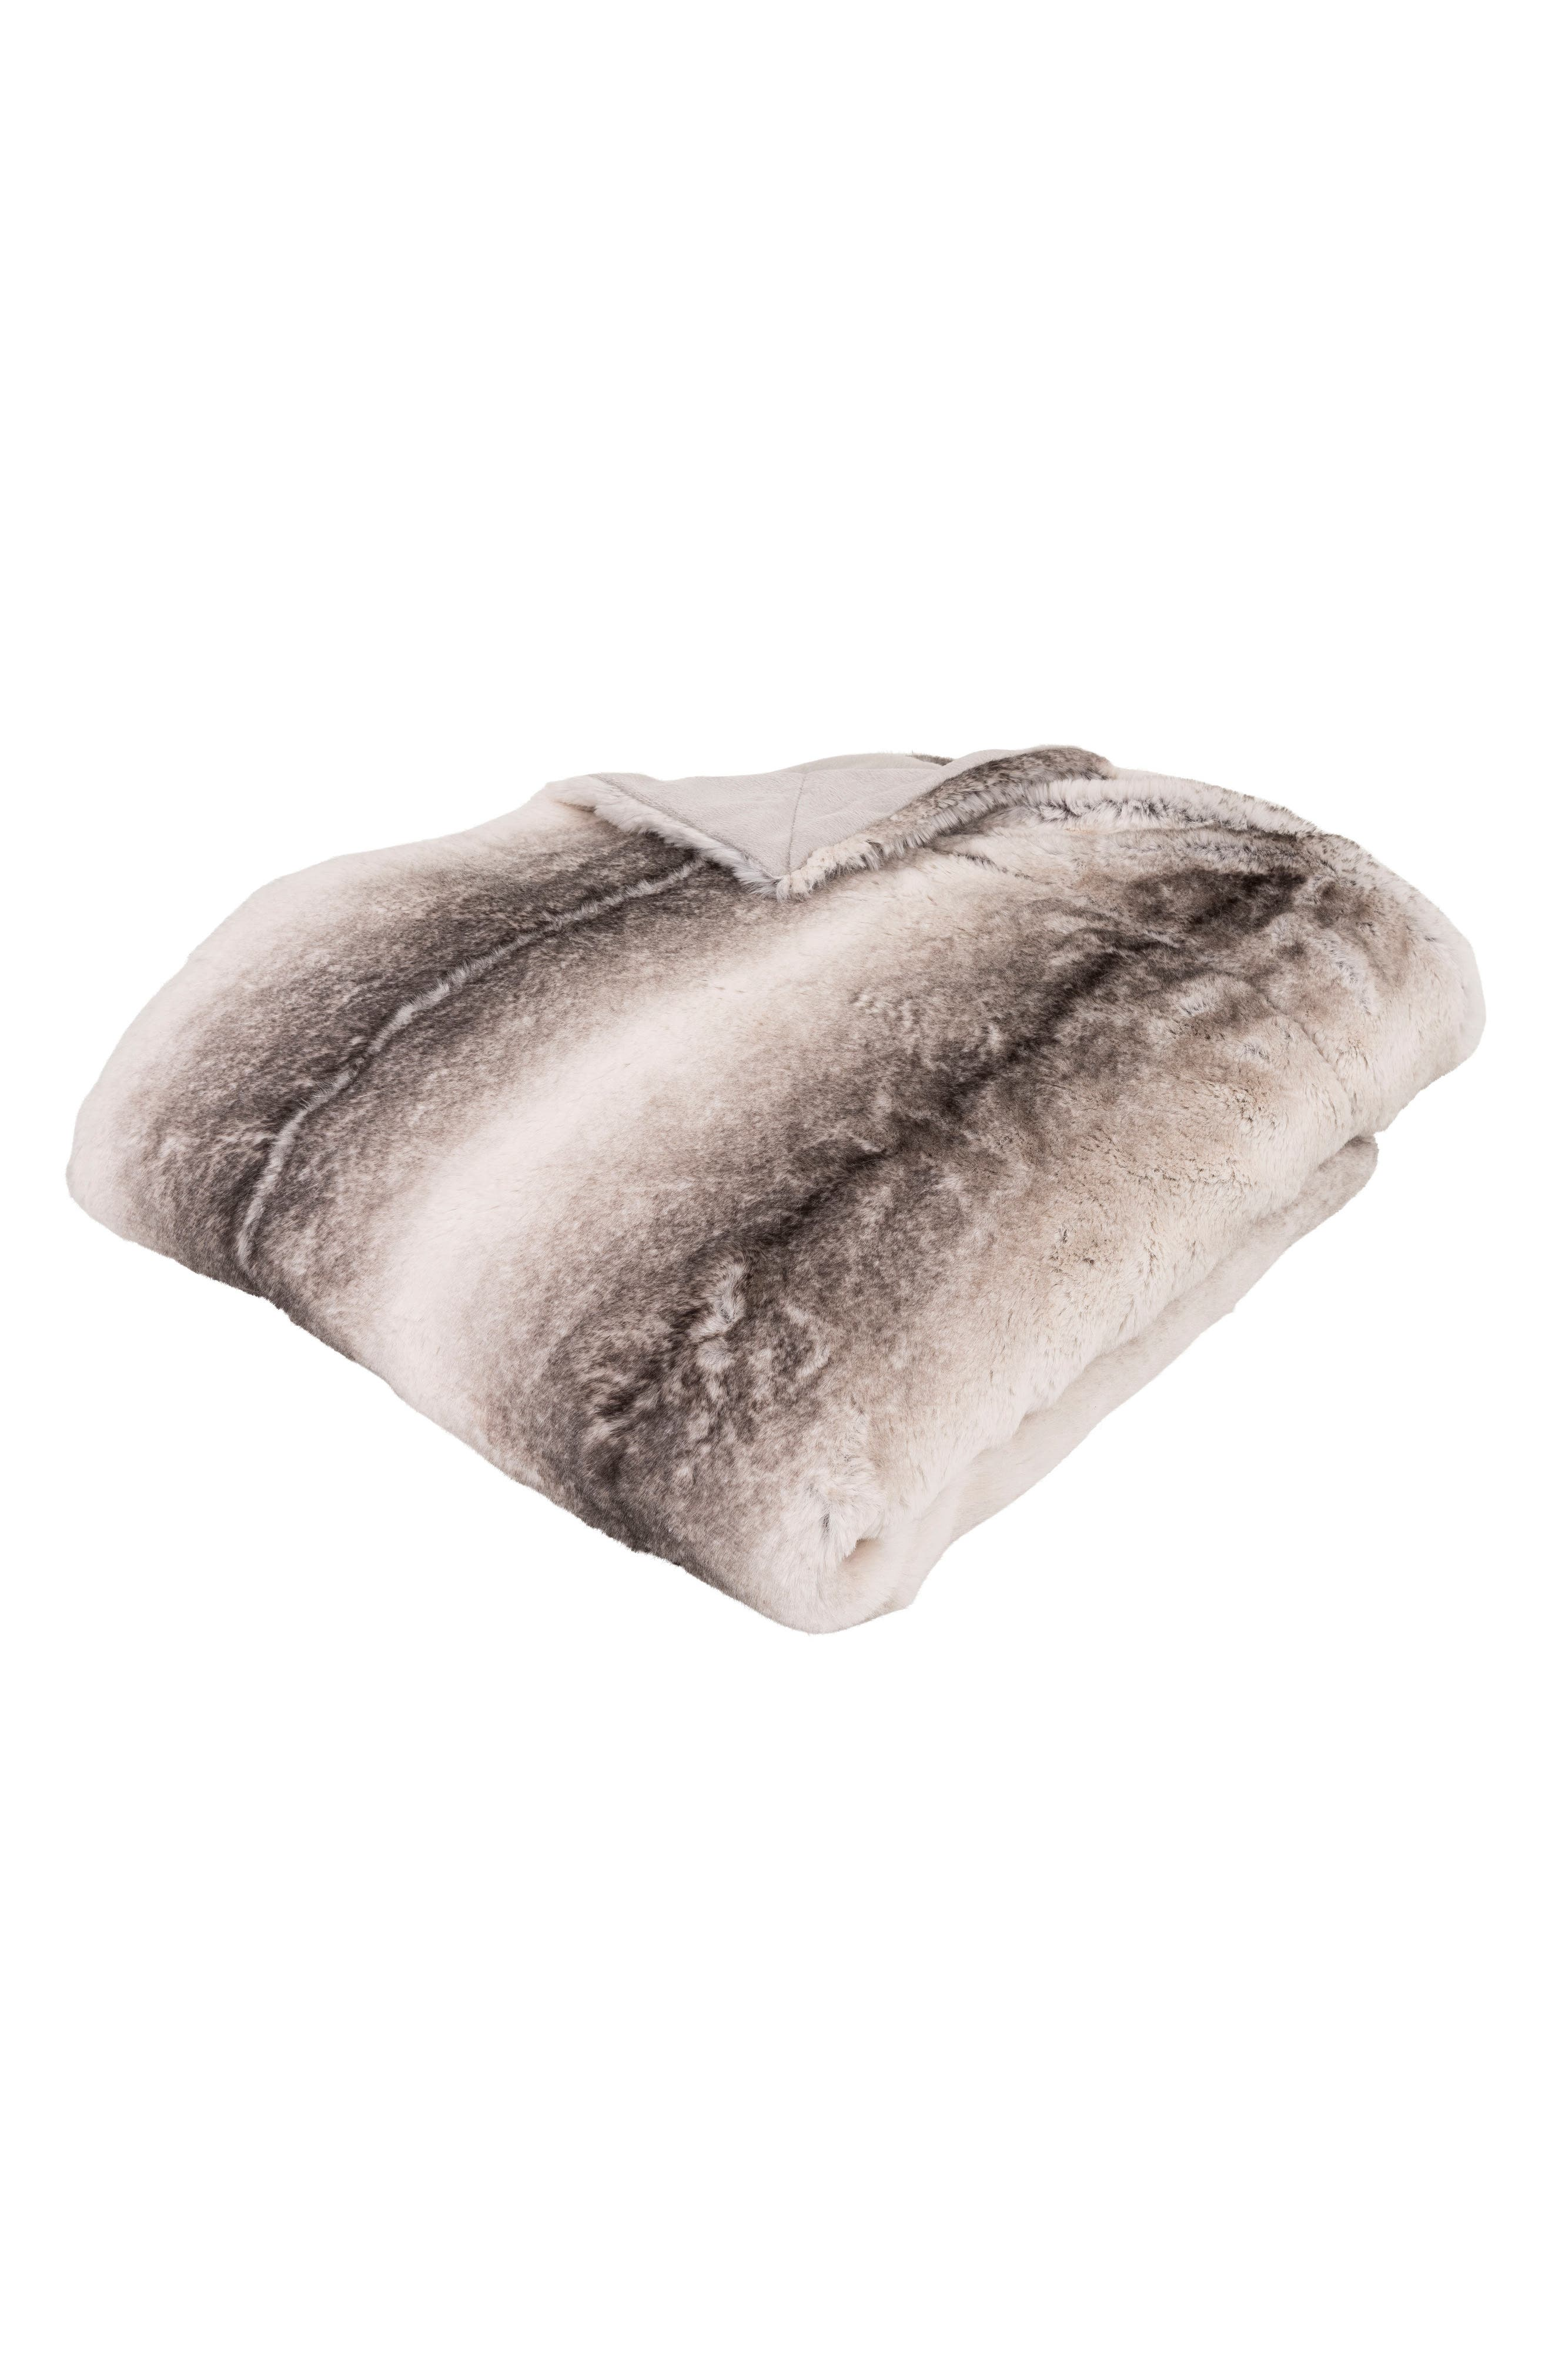 EIGHTMOOD Wildlife Faux Fur Throw Blanket